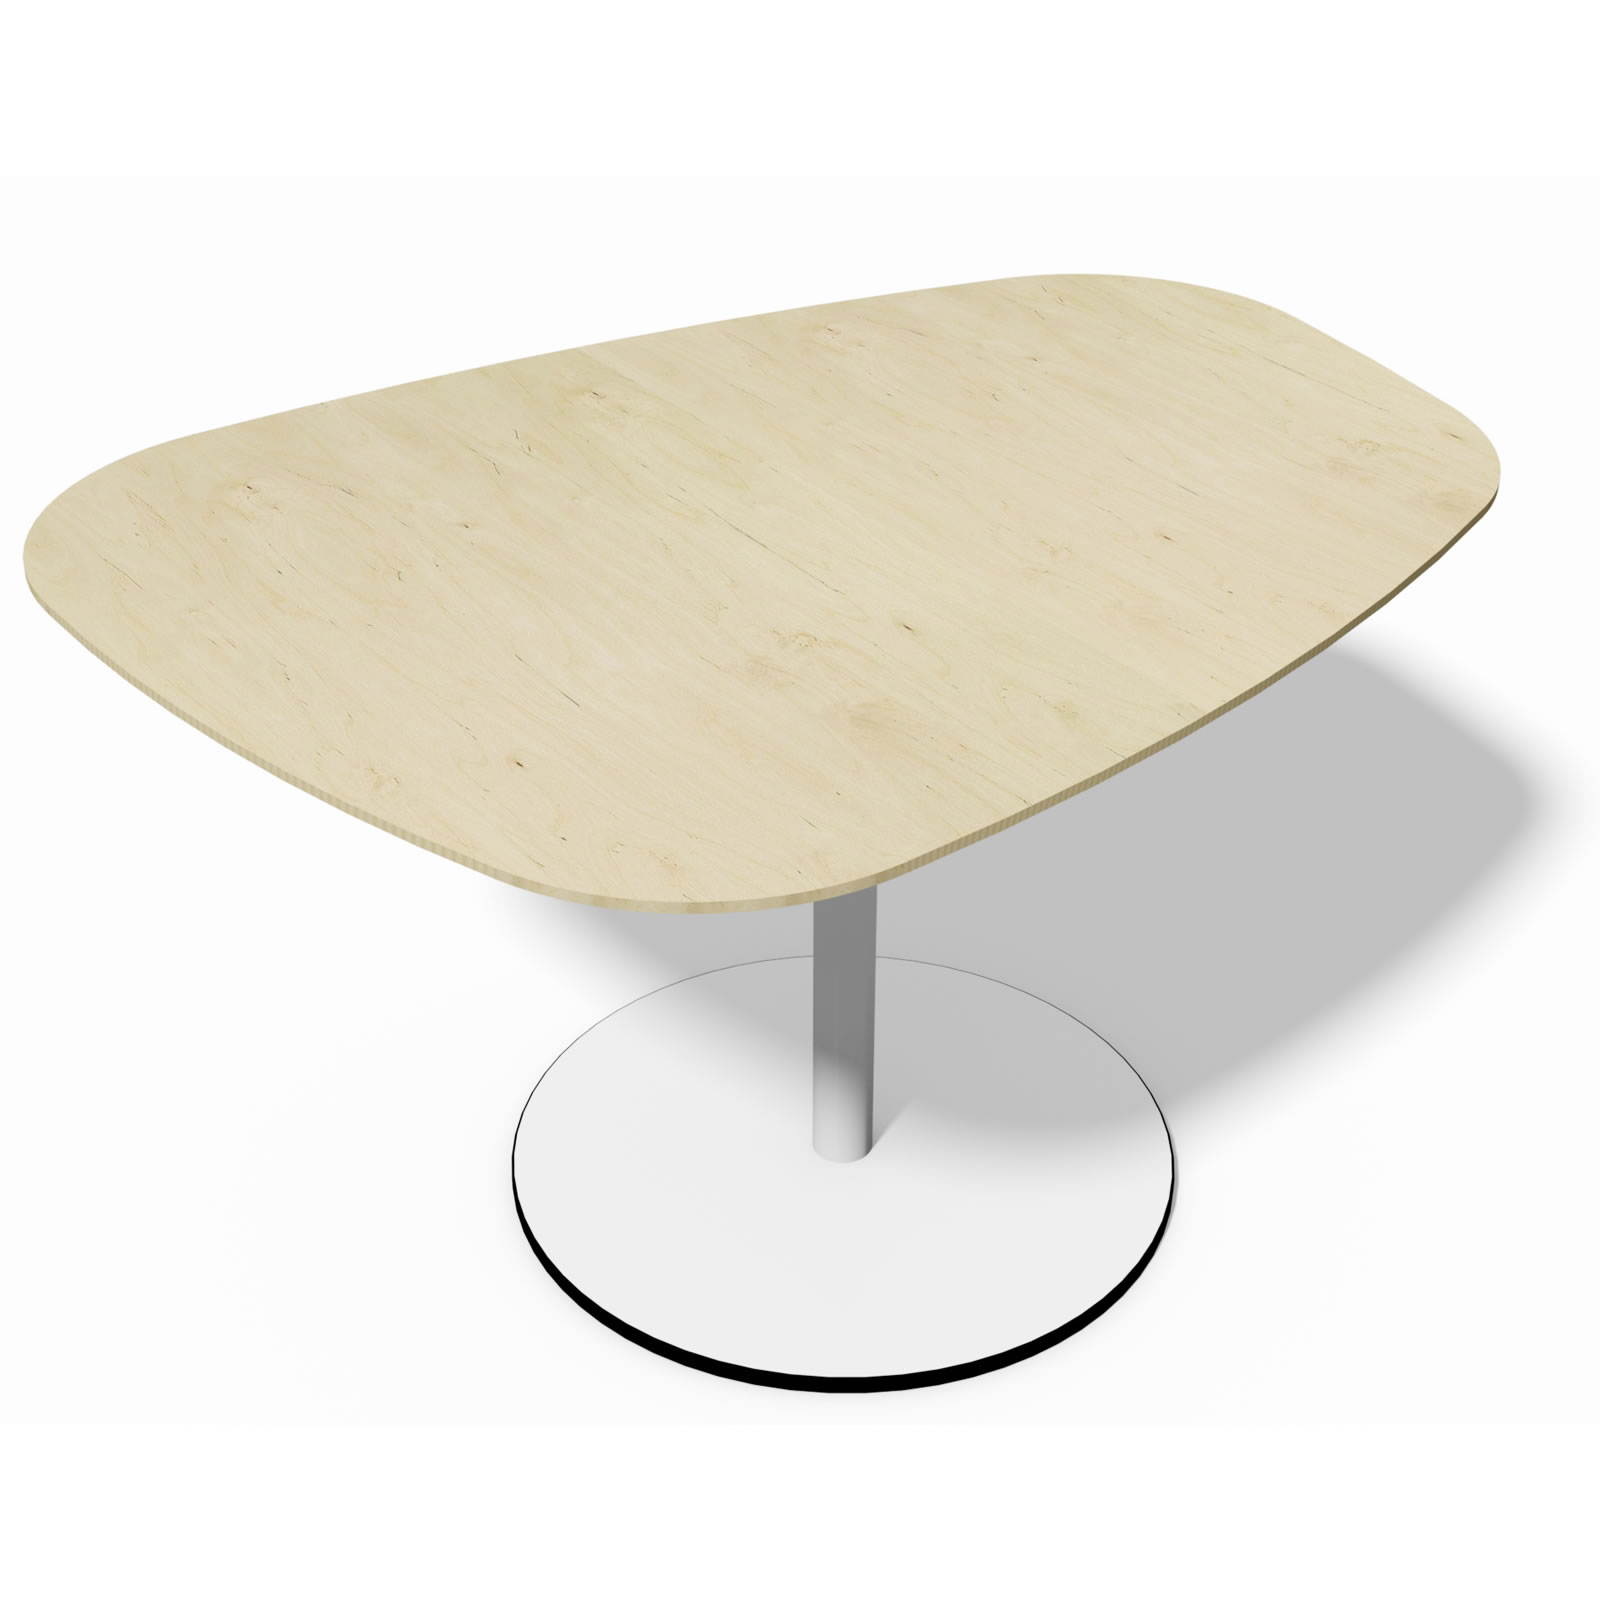 Poise Oblong Coffee Table